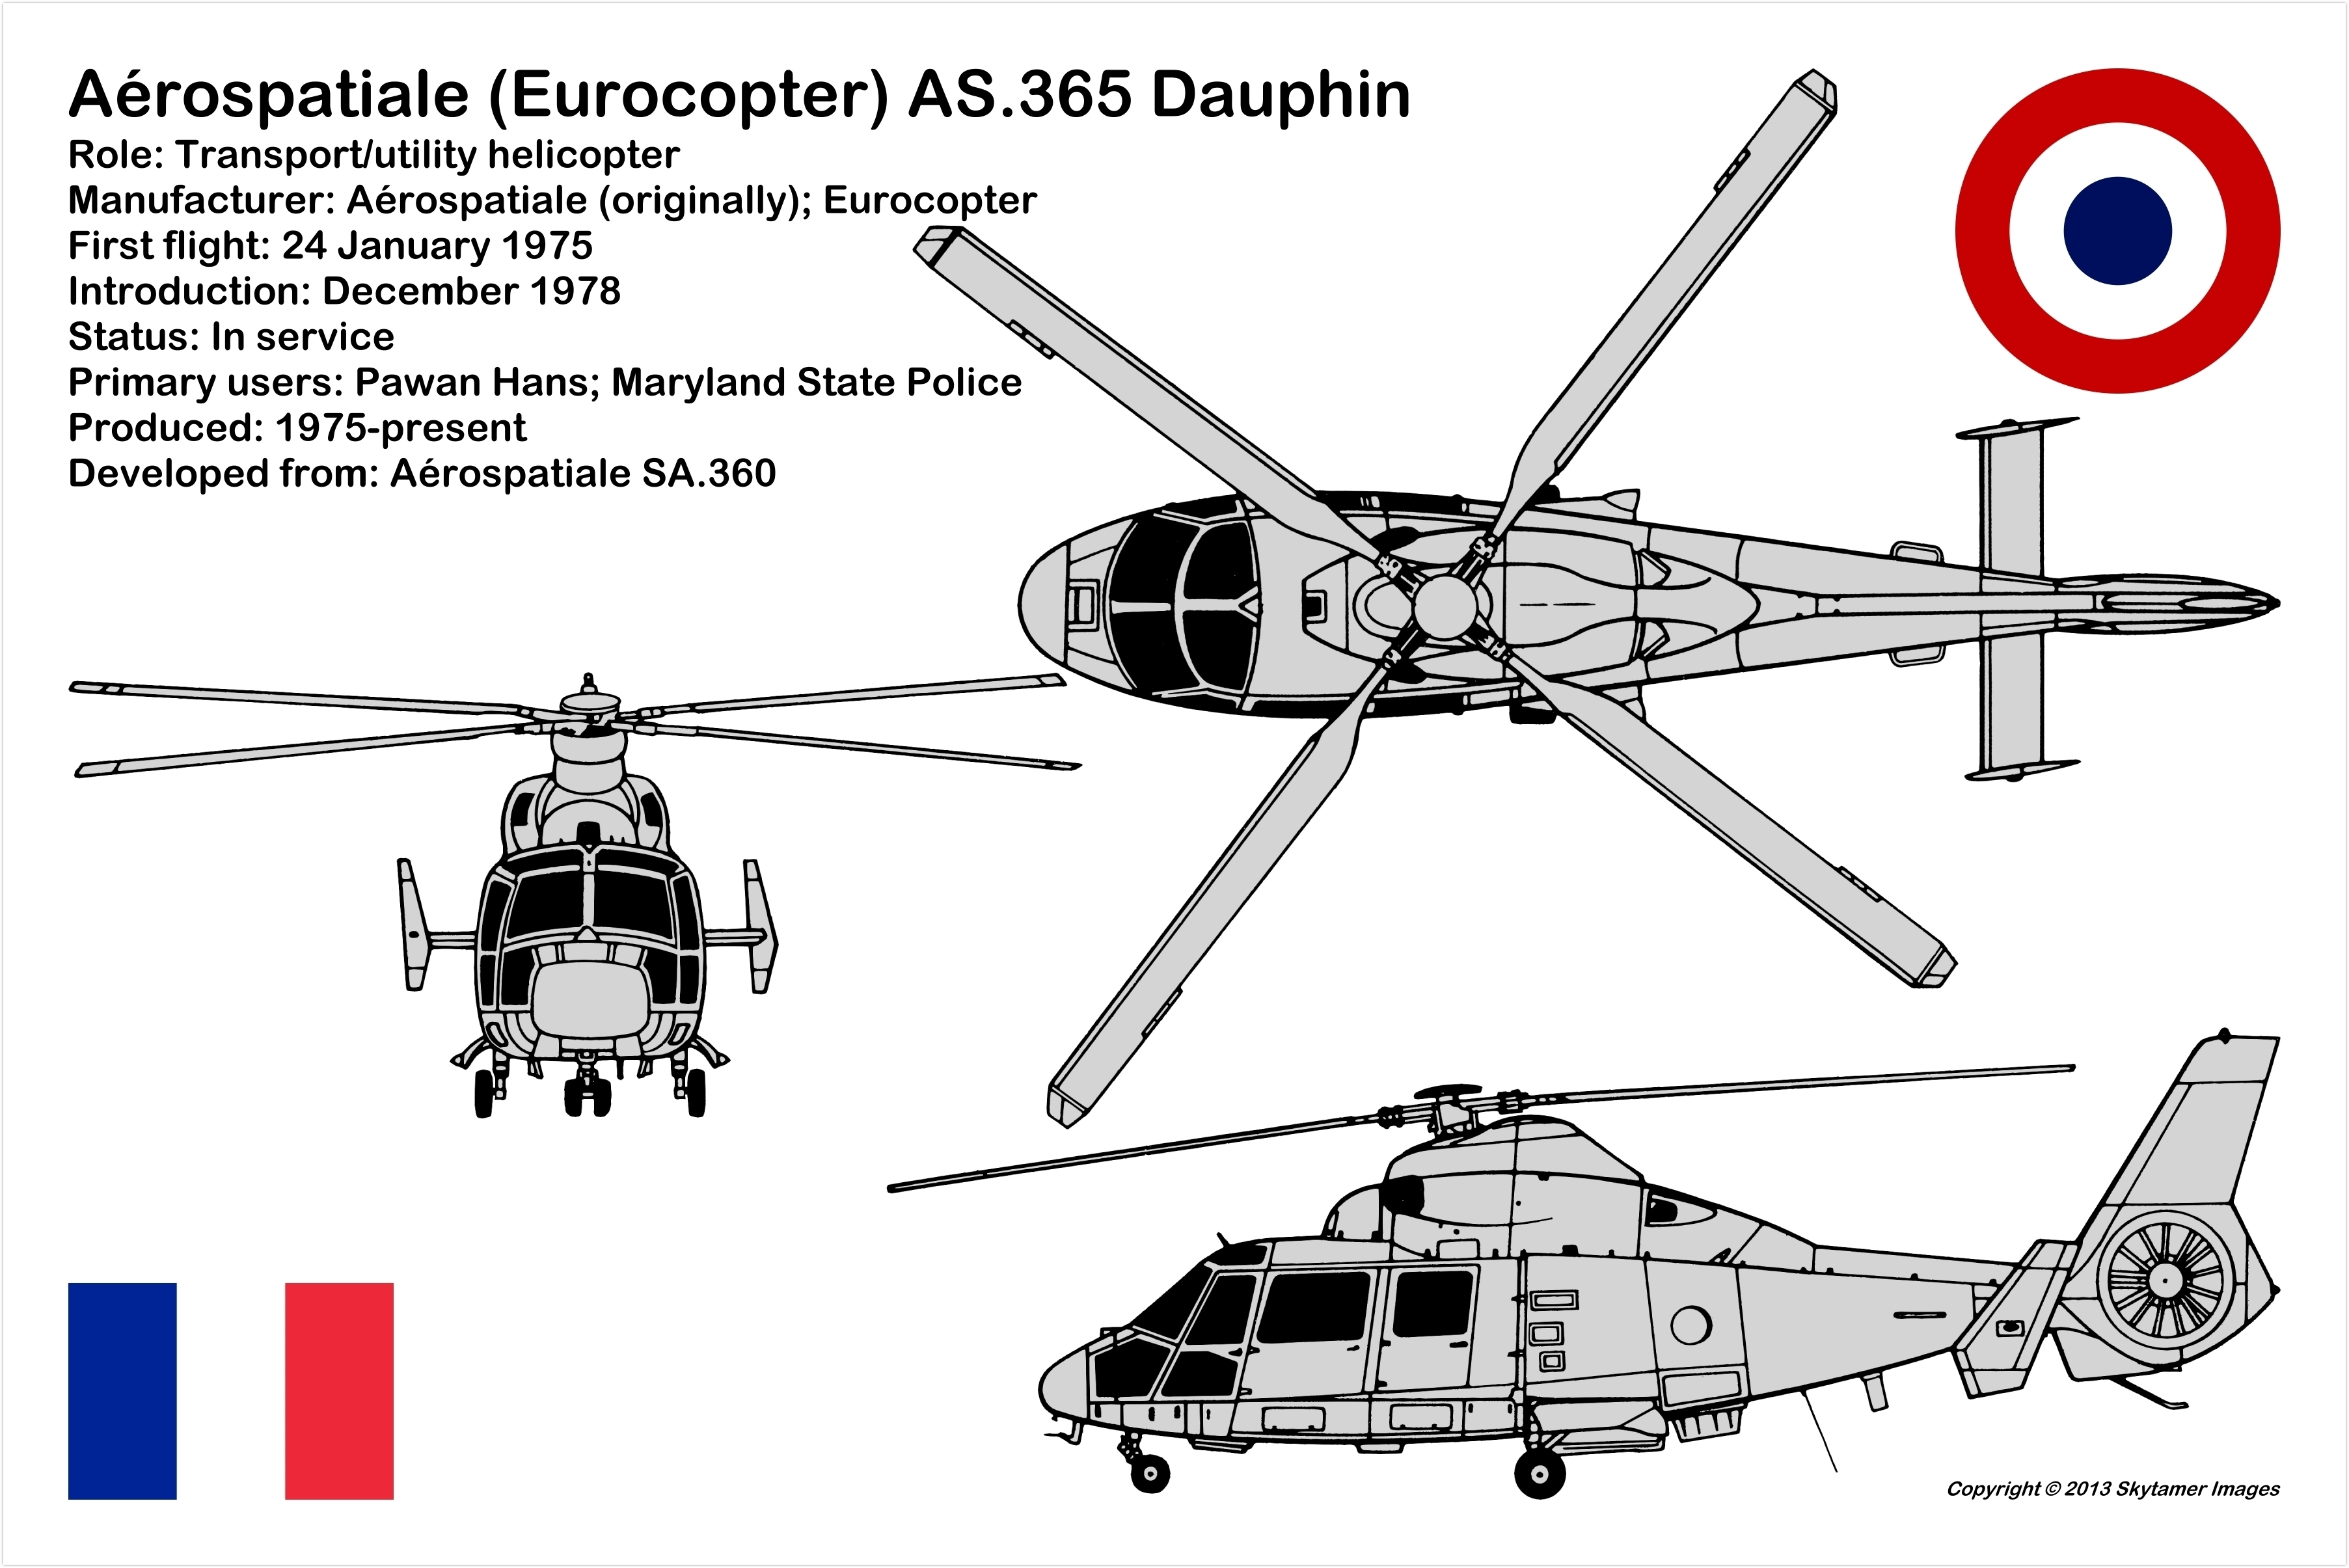 aerospatiale helicopter with 2 8 A on 672 together with Airbus Helicopters H145 By Mercedes Benz Style Review besides 687 likewise Dauphin in addition Sa 318 alouette ii.